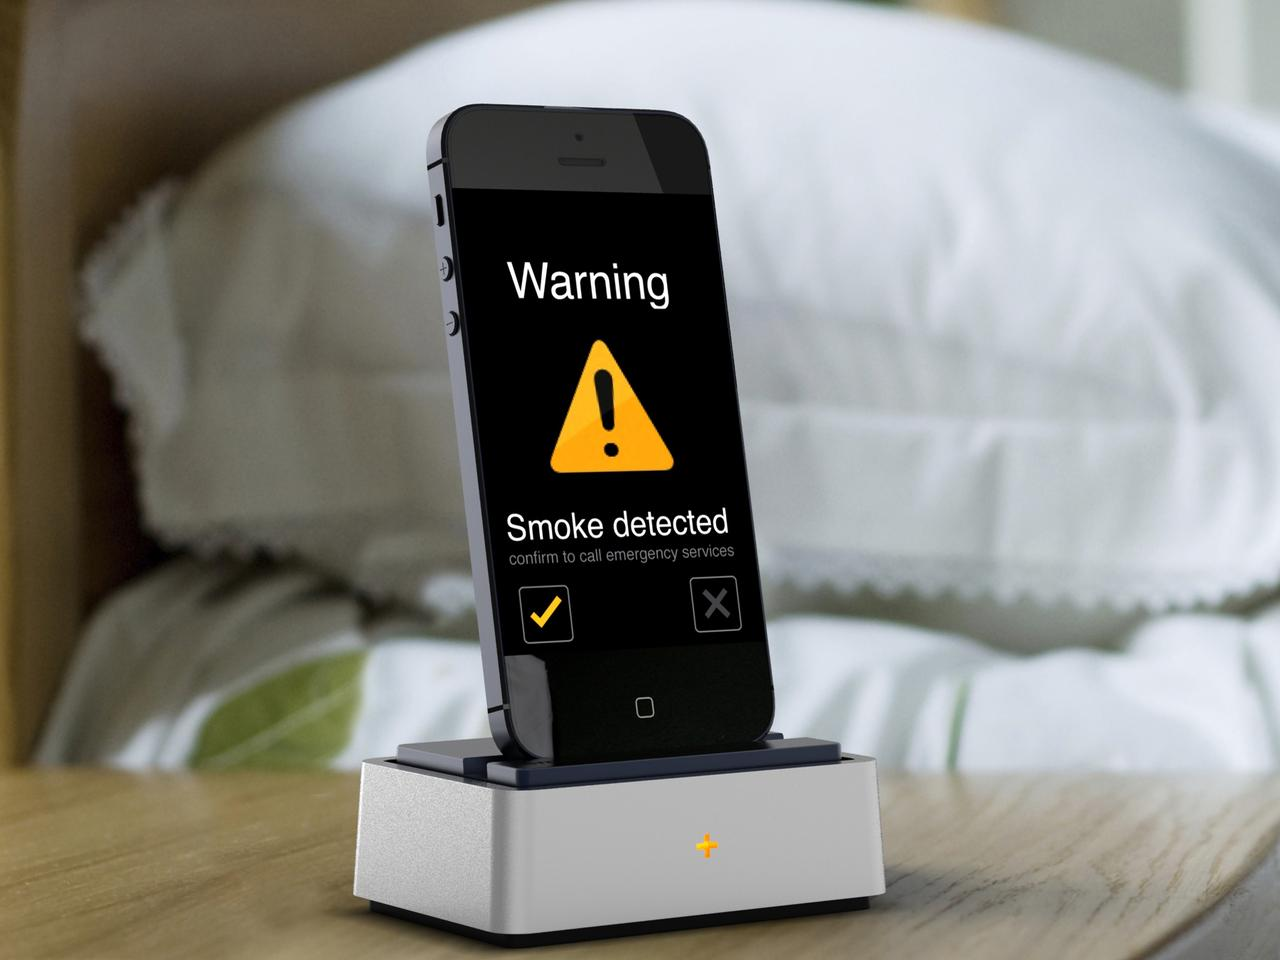 The Sense+ smartphone dock will sound an alert in the event of fire